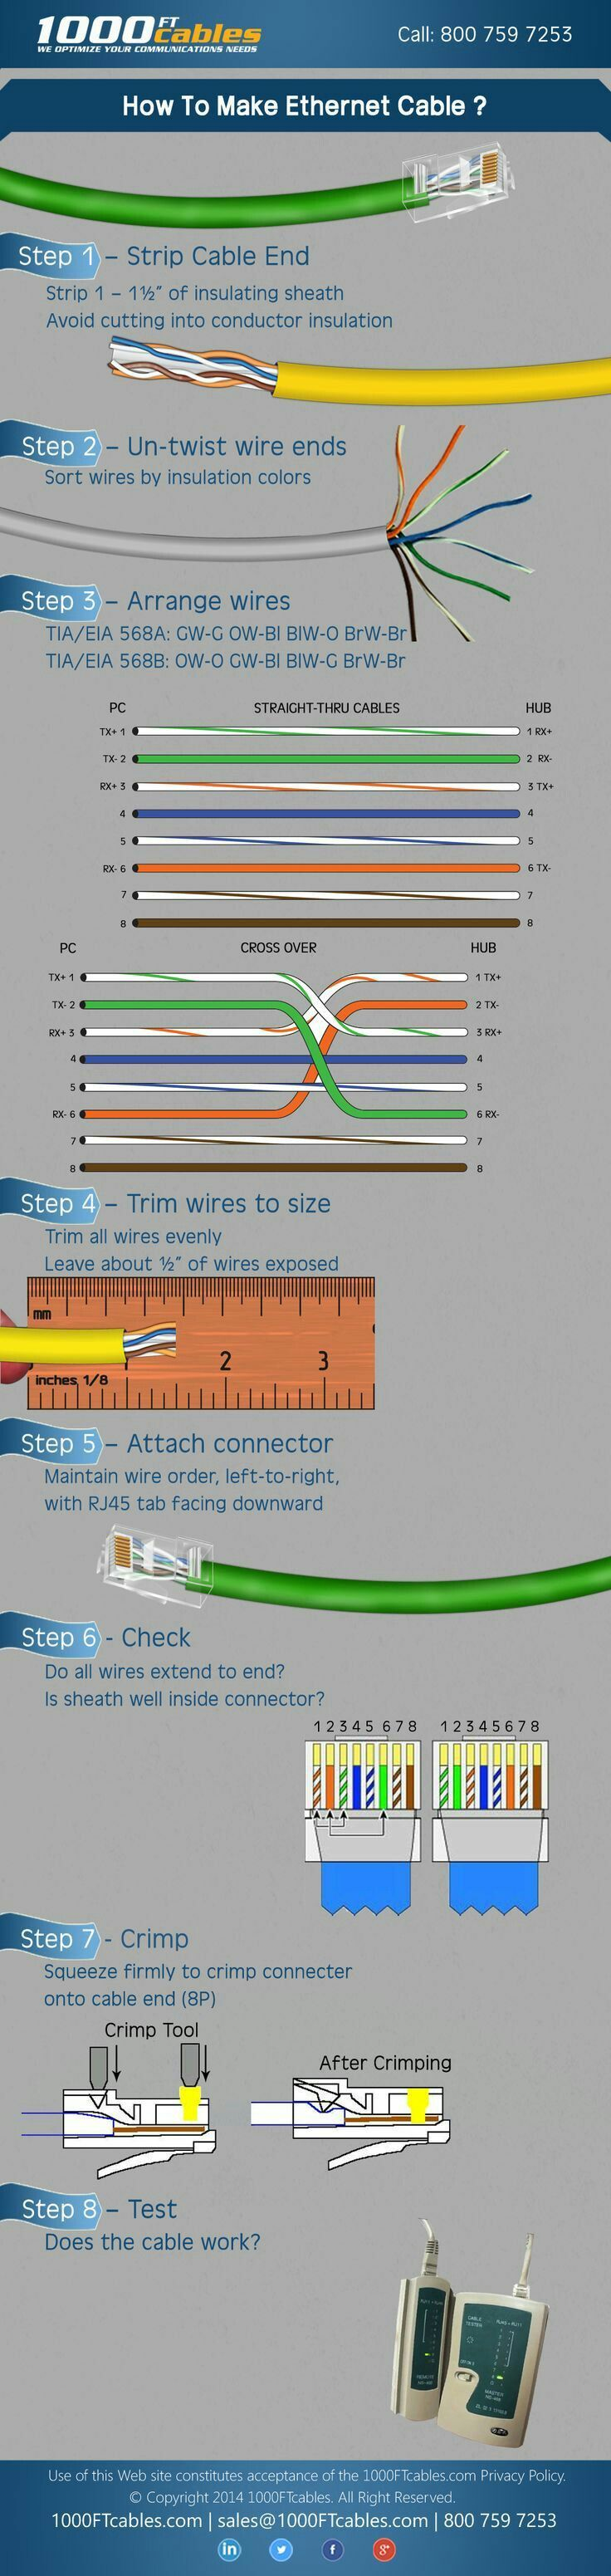 Cable Diagram cable, Computer